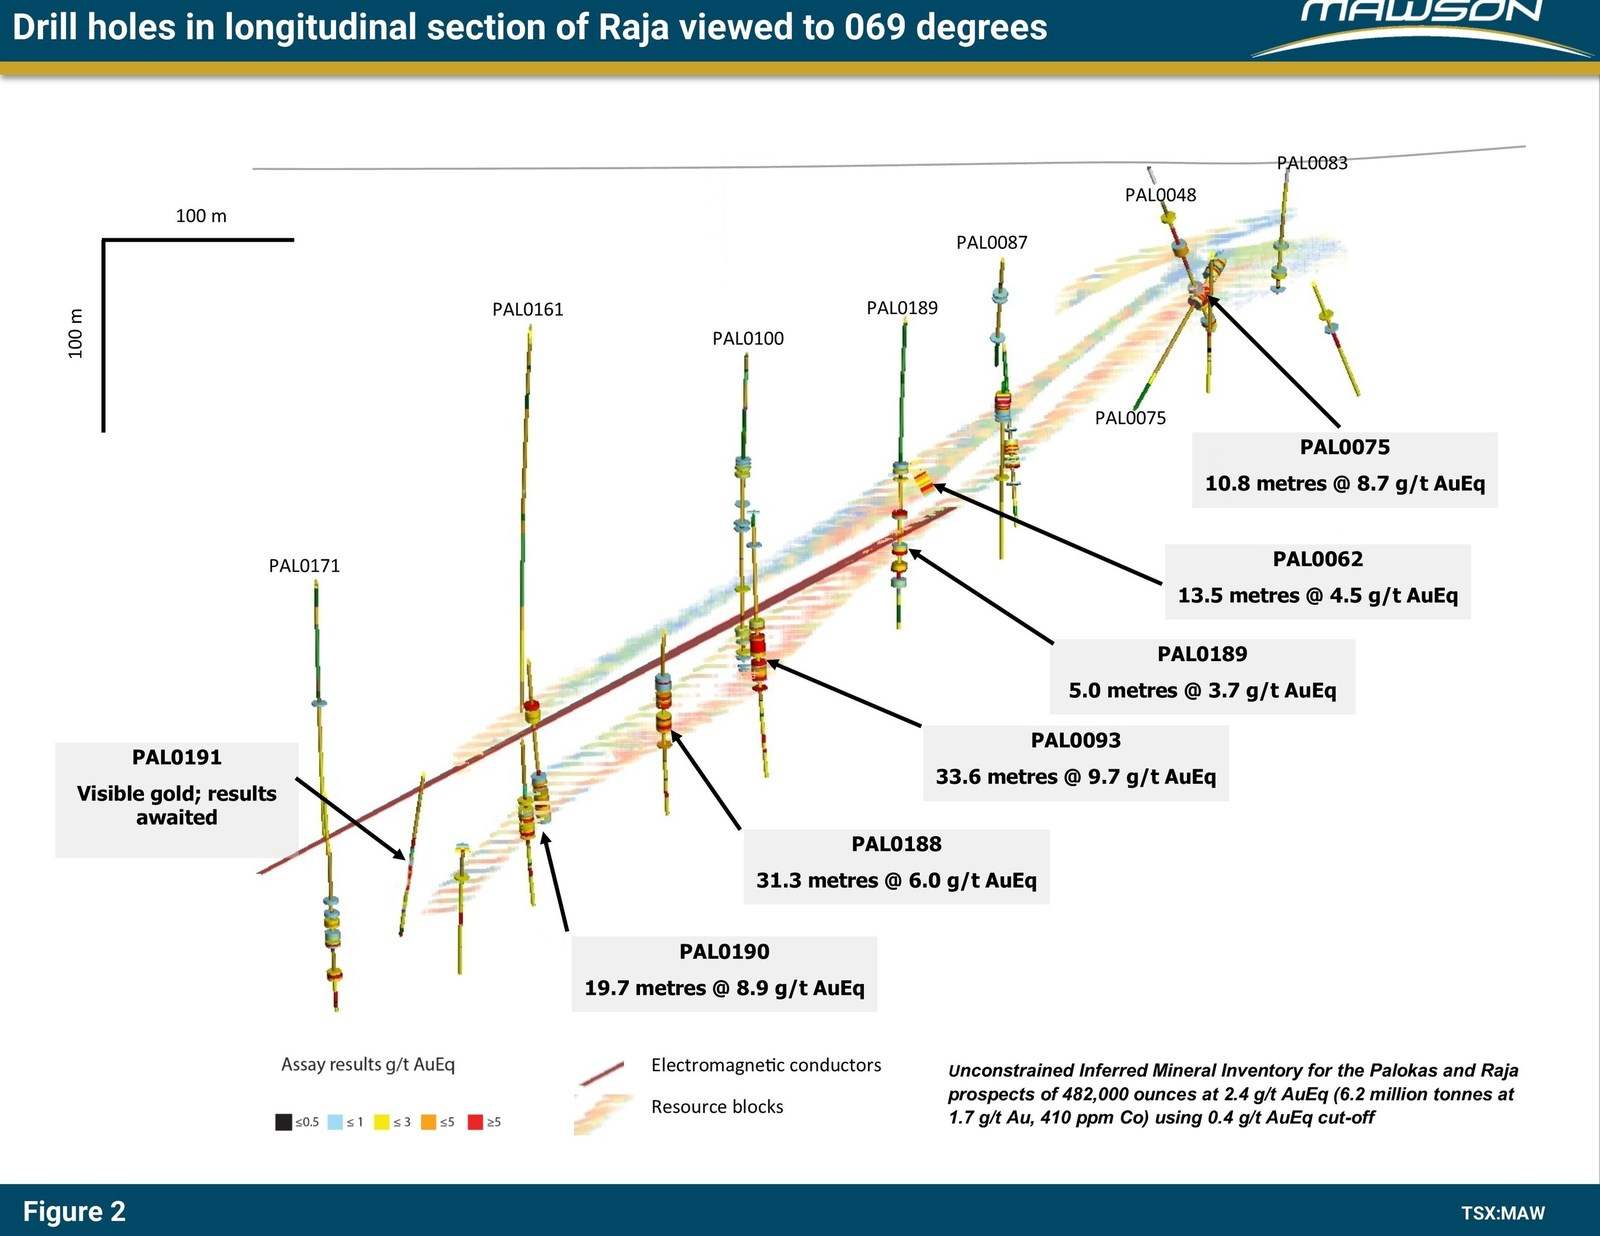 Figure 2: Longitudinal section at Raja prospect indicating the new and existing high-grade Au-Co results within the 339 linear trend. The view is towards 069 degrees. The blocks from within existing resources are shown along with the modelled TEM plate. See Figure 1 for location of section in plan view.